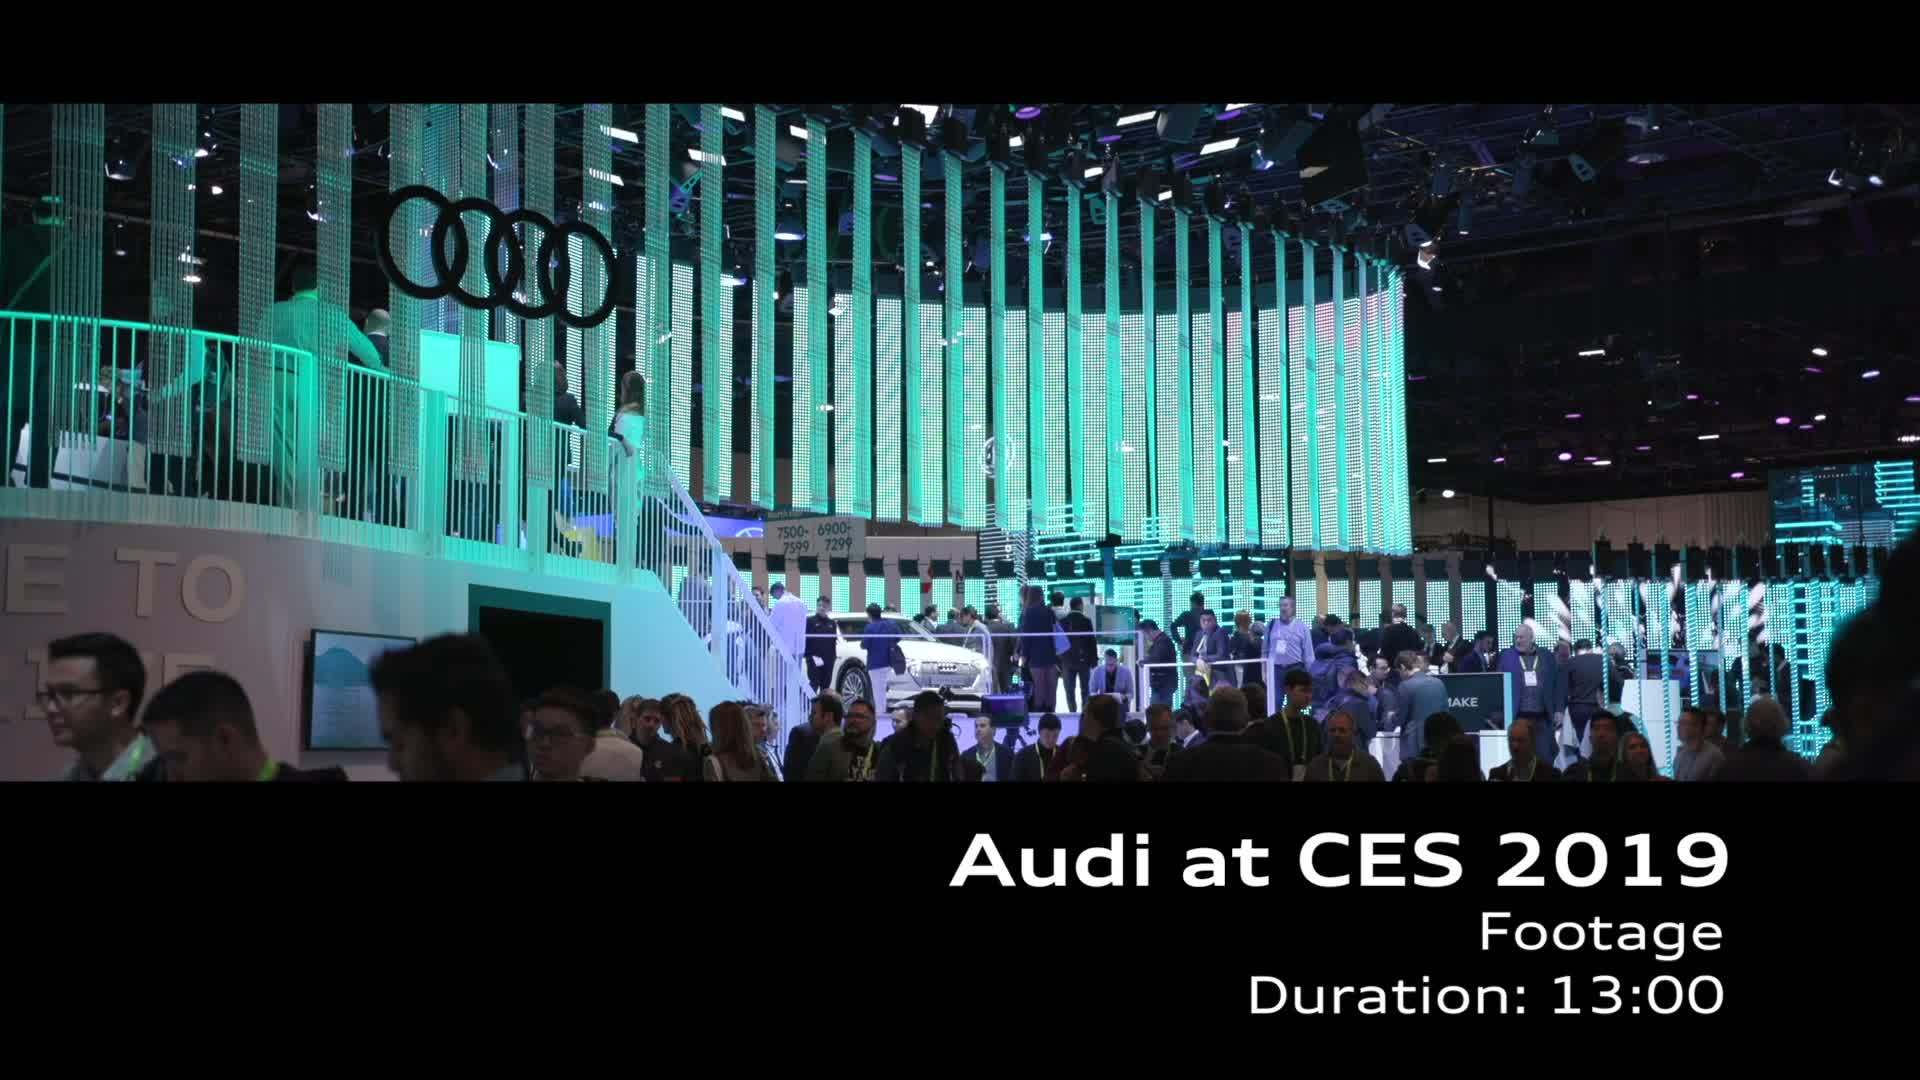 Footage Audi at CES 2019